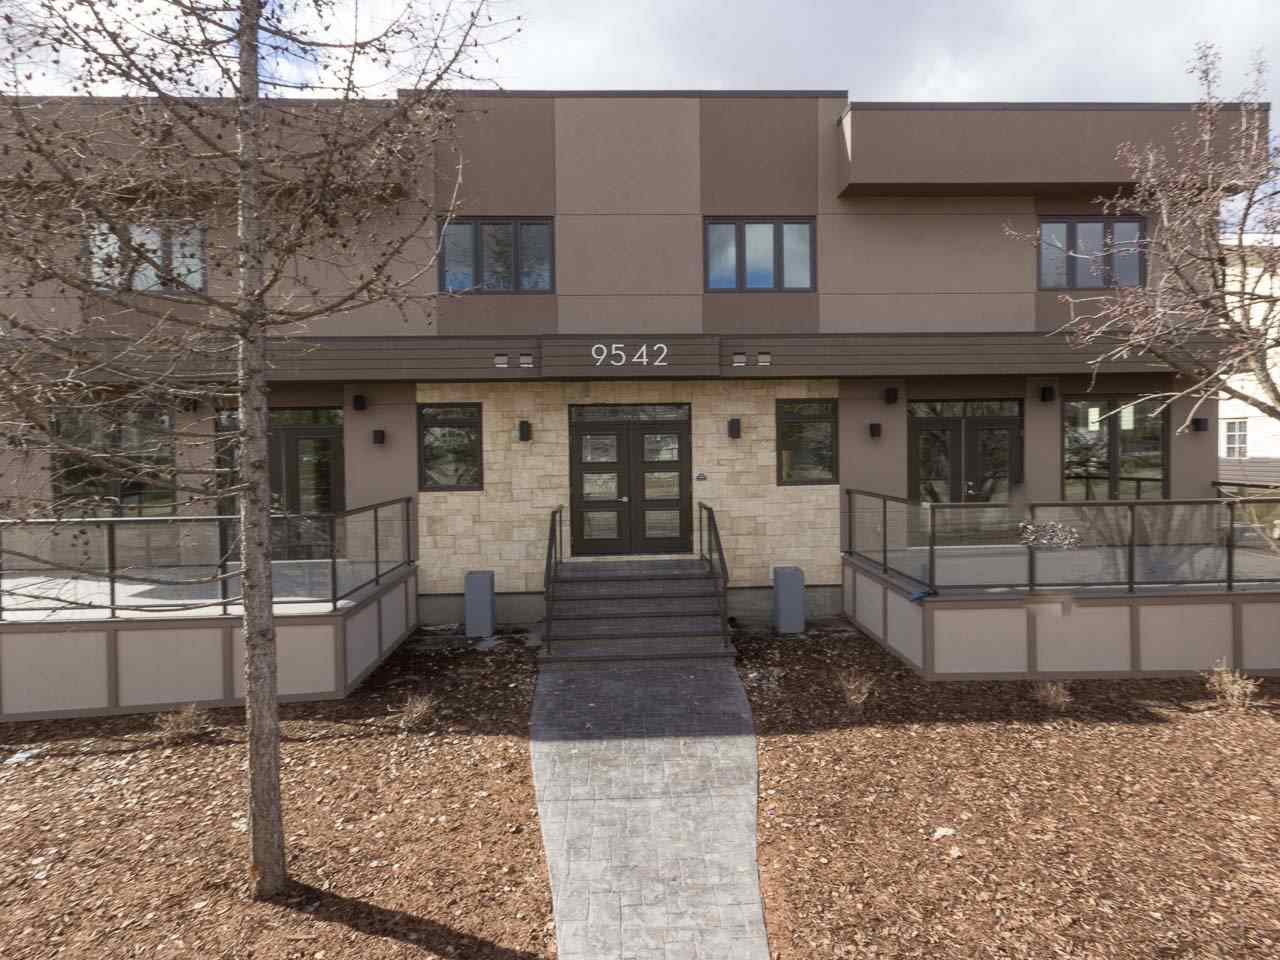 Main Photo: 2 9542 142 Street in Edmonton: Zone 10 Townhouse for sale : MLS® # E4058564